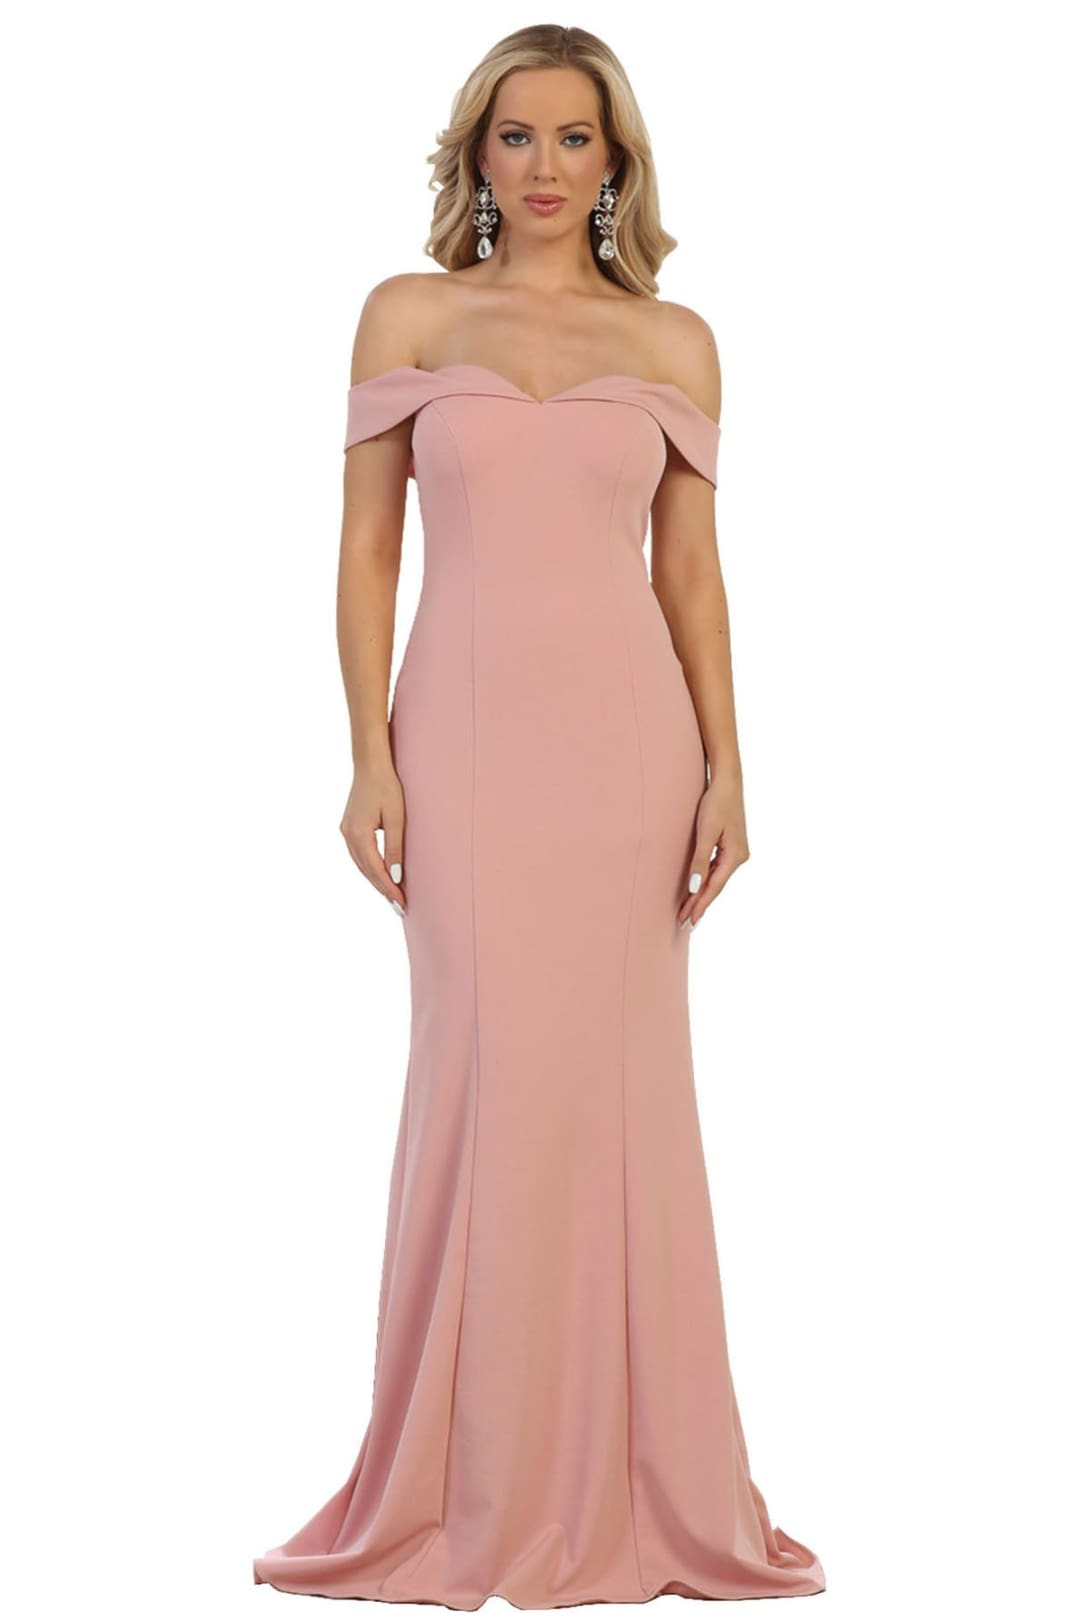 Simple Prom Designer Gown - Dusty Rose / 8